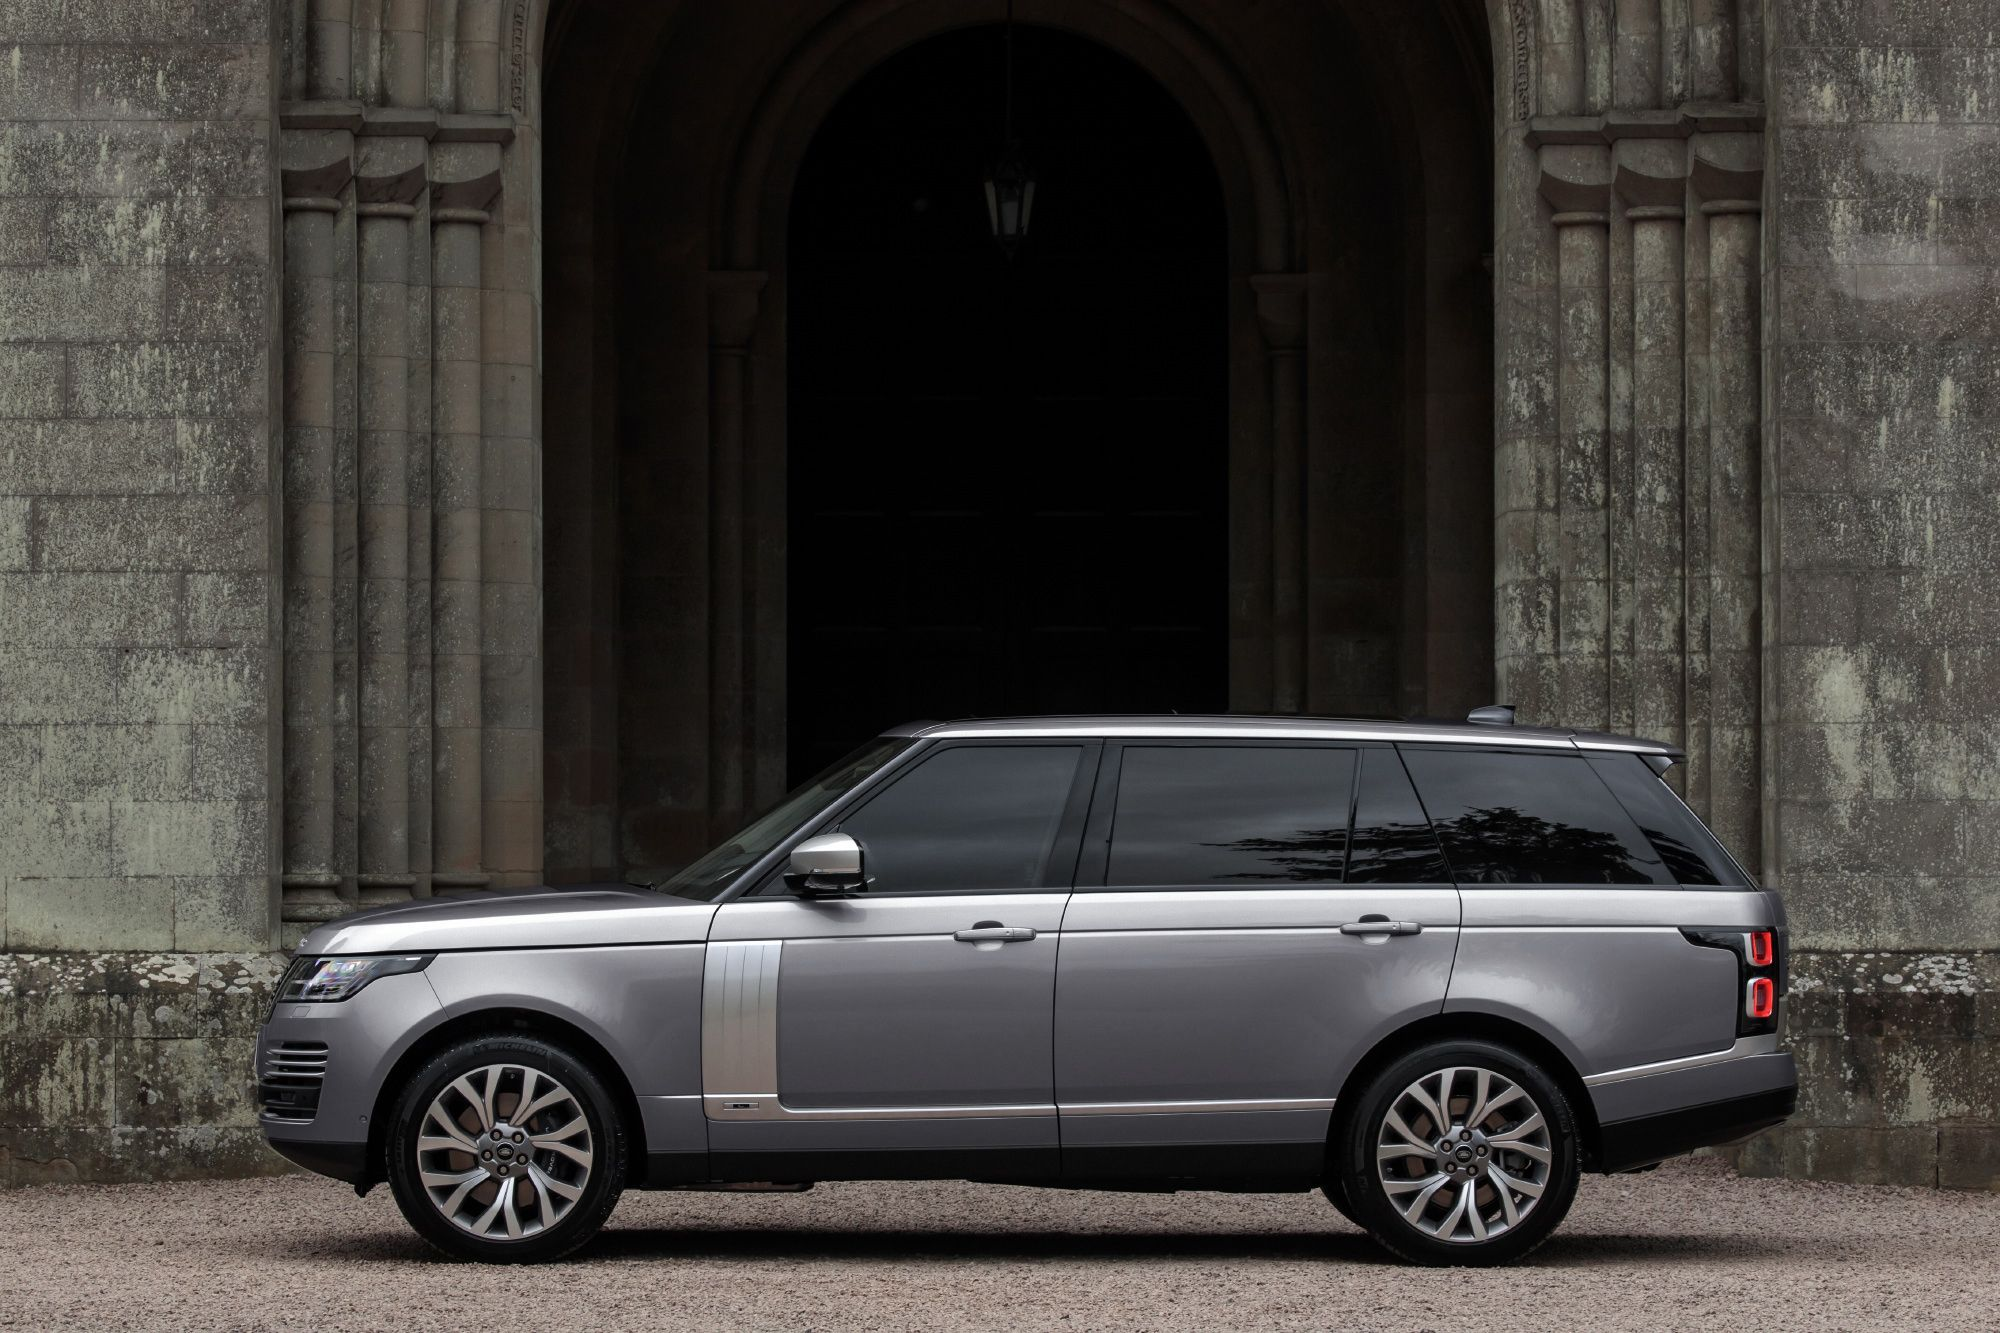 2020 Range Rover Every Model Explained From Plug In Hybrid To 557 Hp V 8